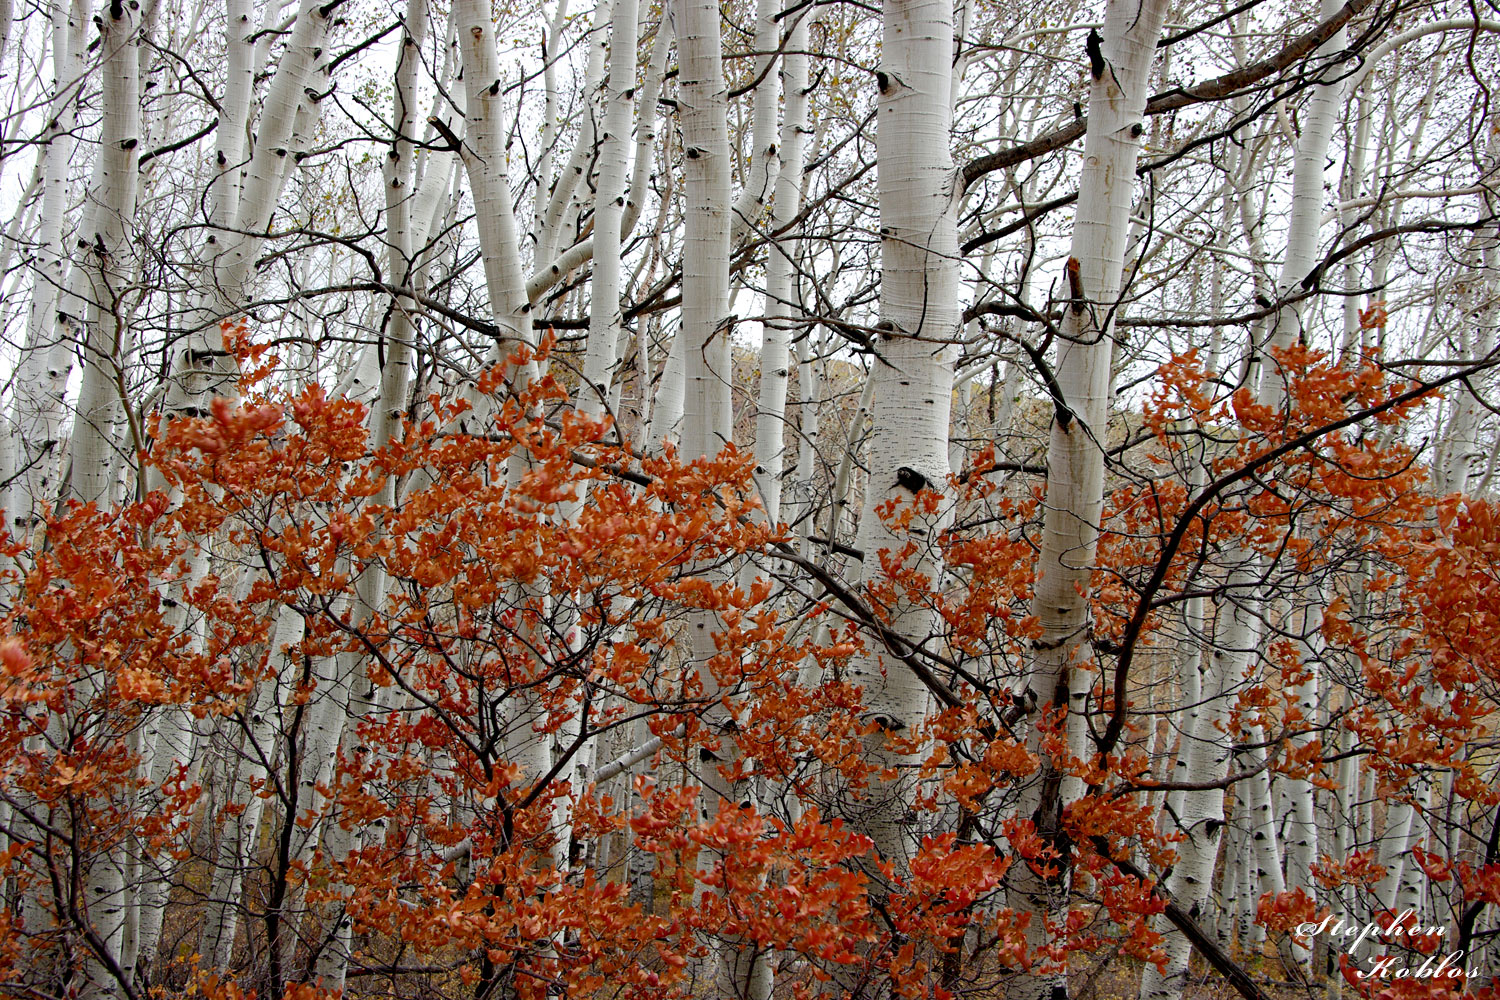 I was driving on Last Dollar Road in late in the fall of 2009, after most of the aspen leaves had fallen, when I came across...